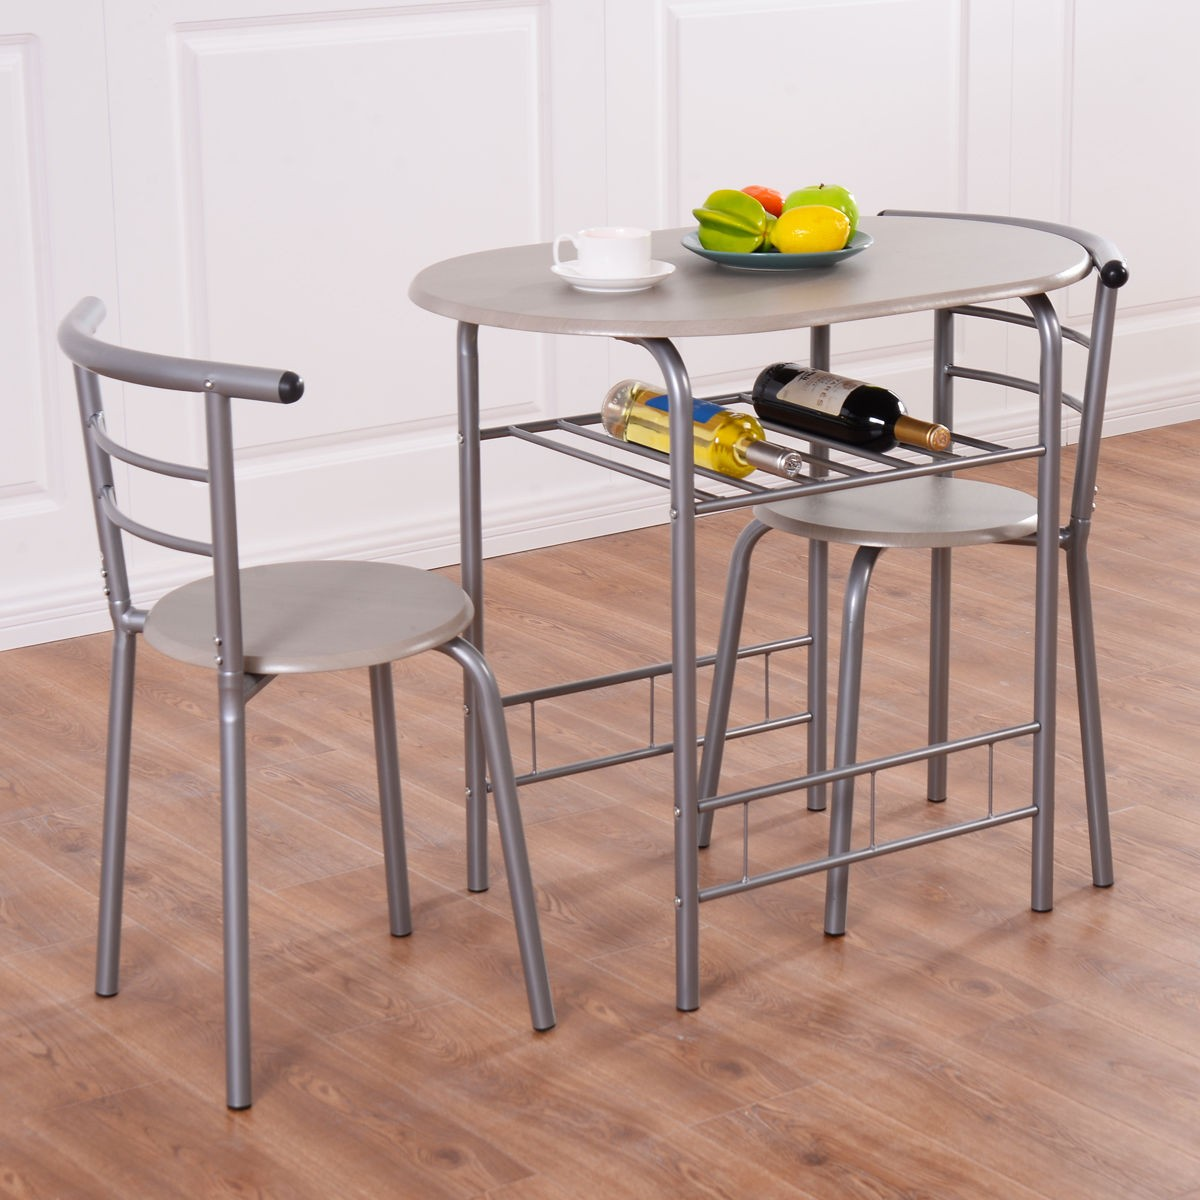 Small bistro table set for kitchen 3 bistro set table 2 for Compact kitchen table set